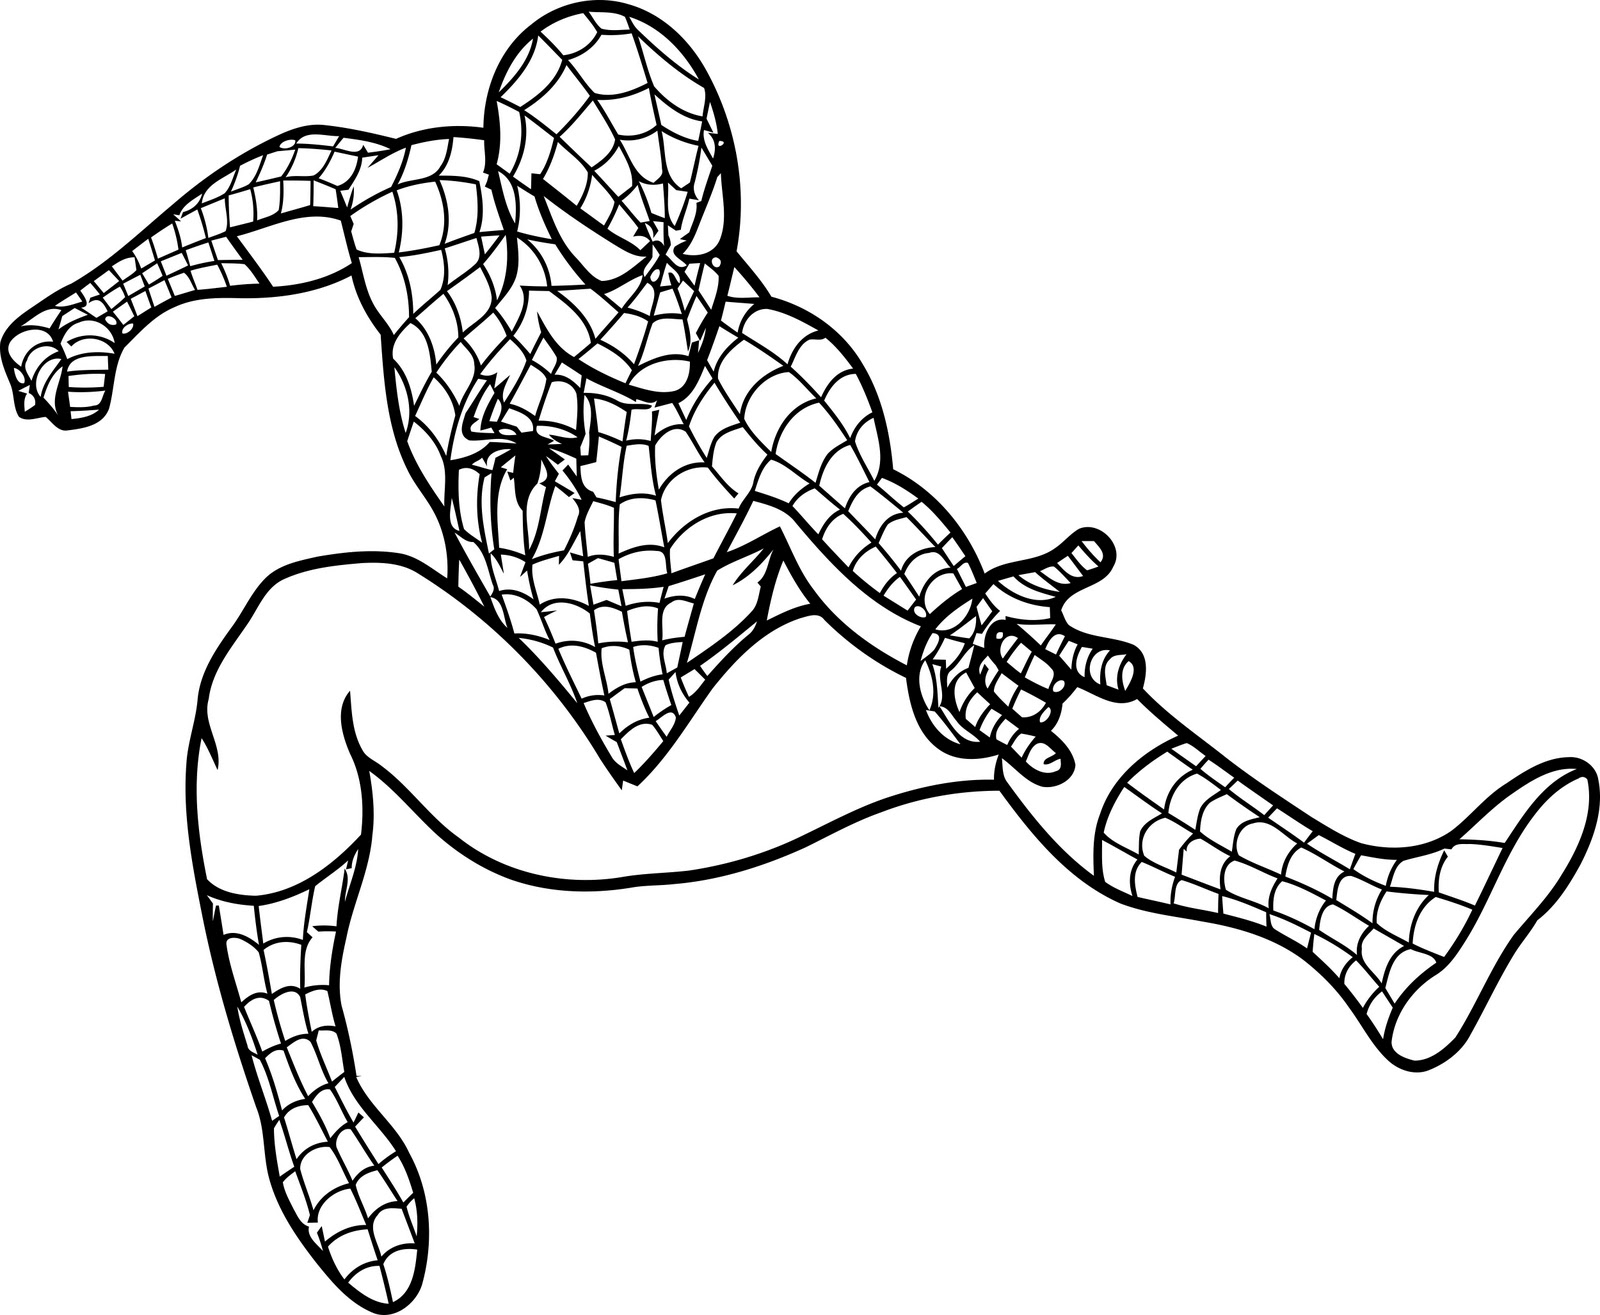 1600x1315 Free Printable Spiderman Coloring Pages For Kids